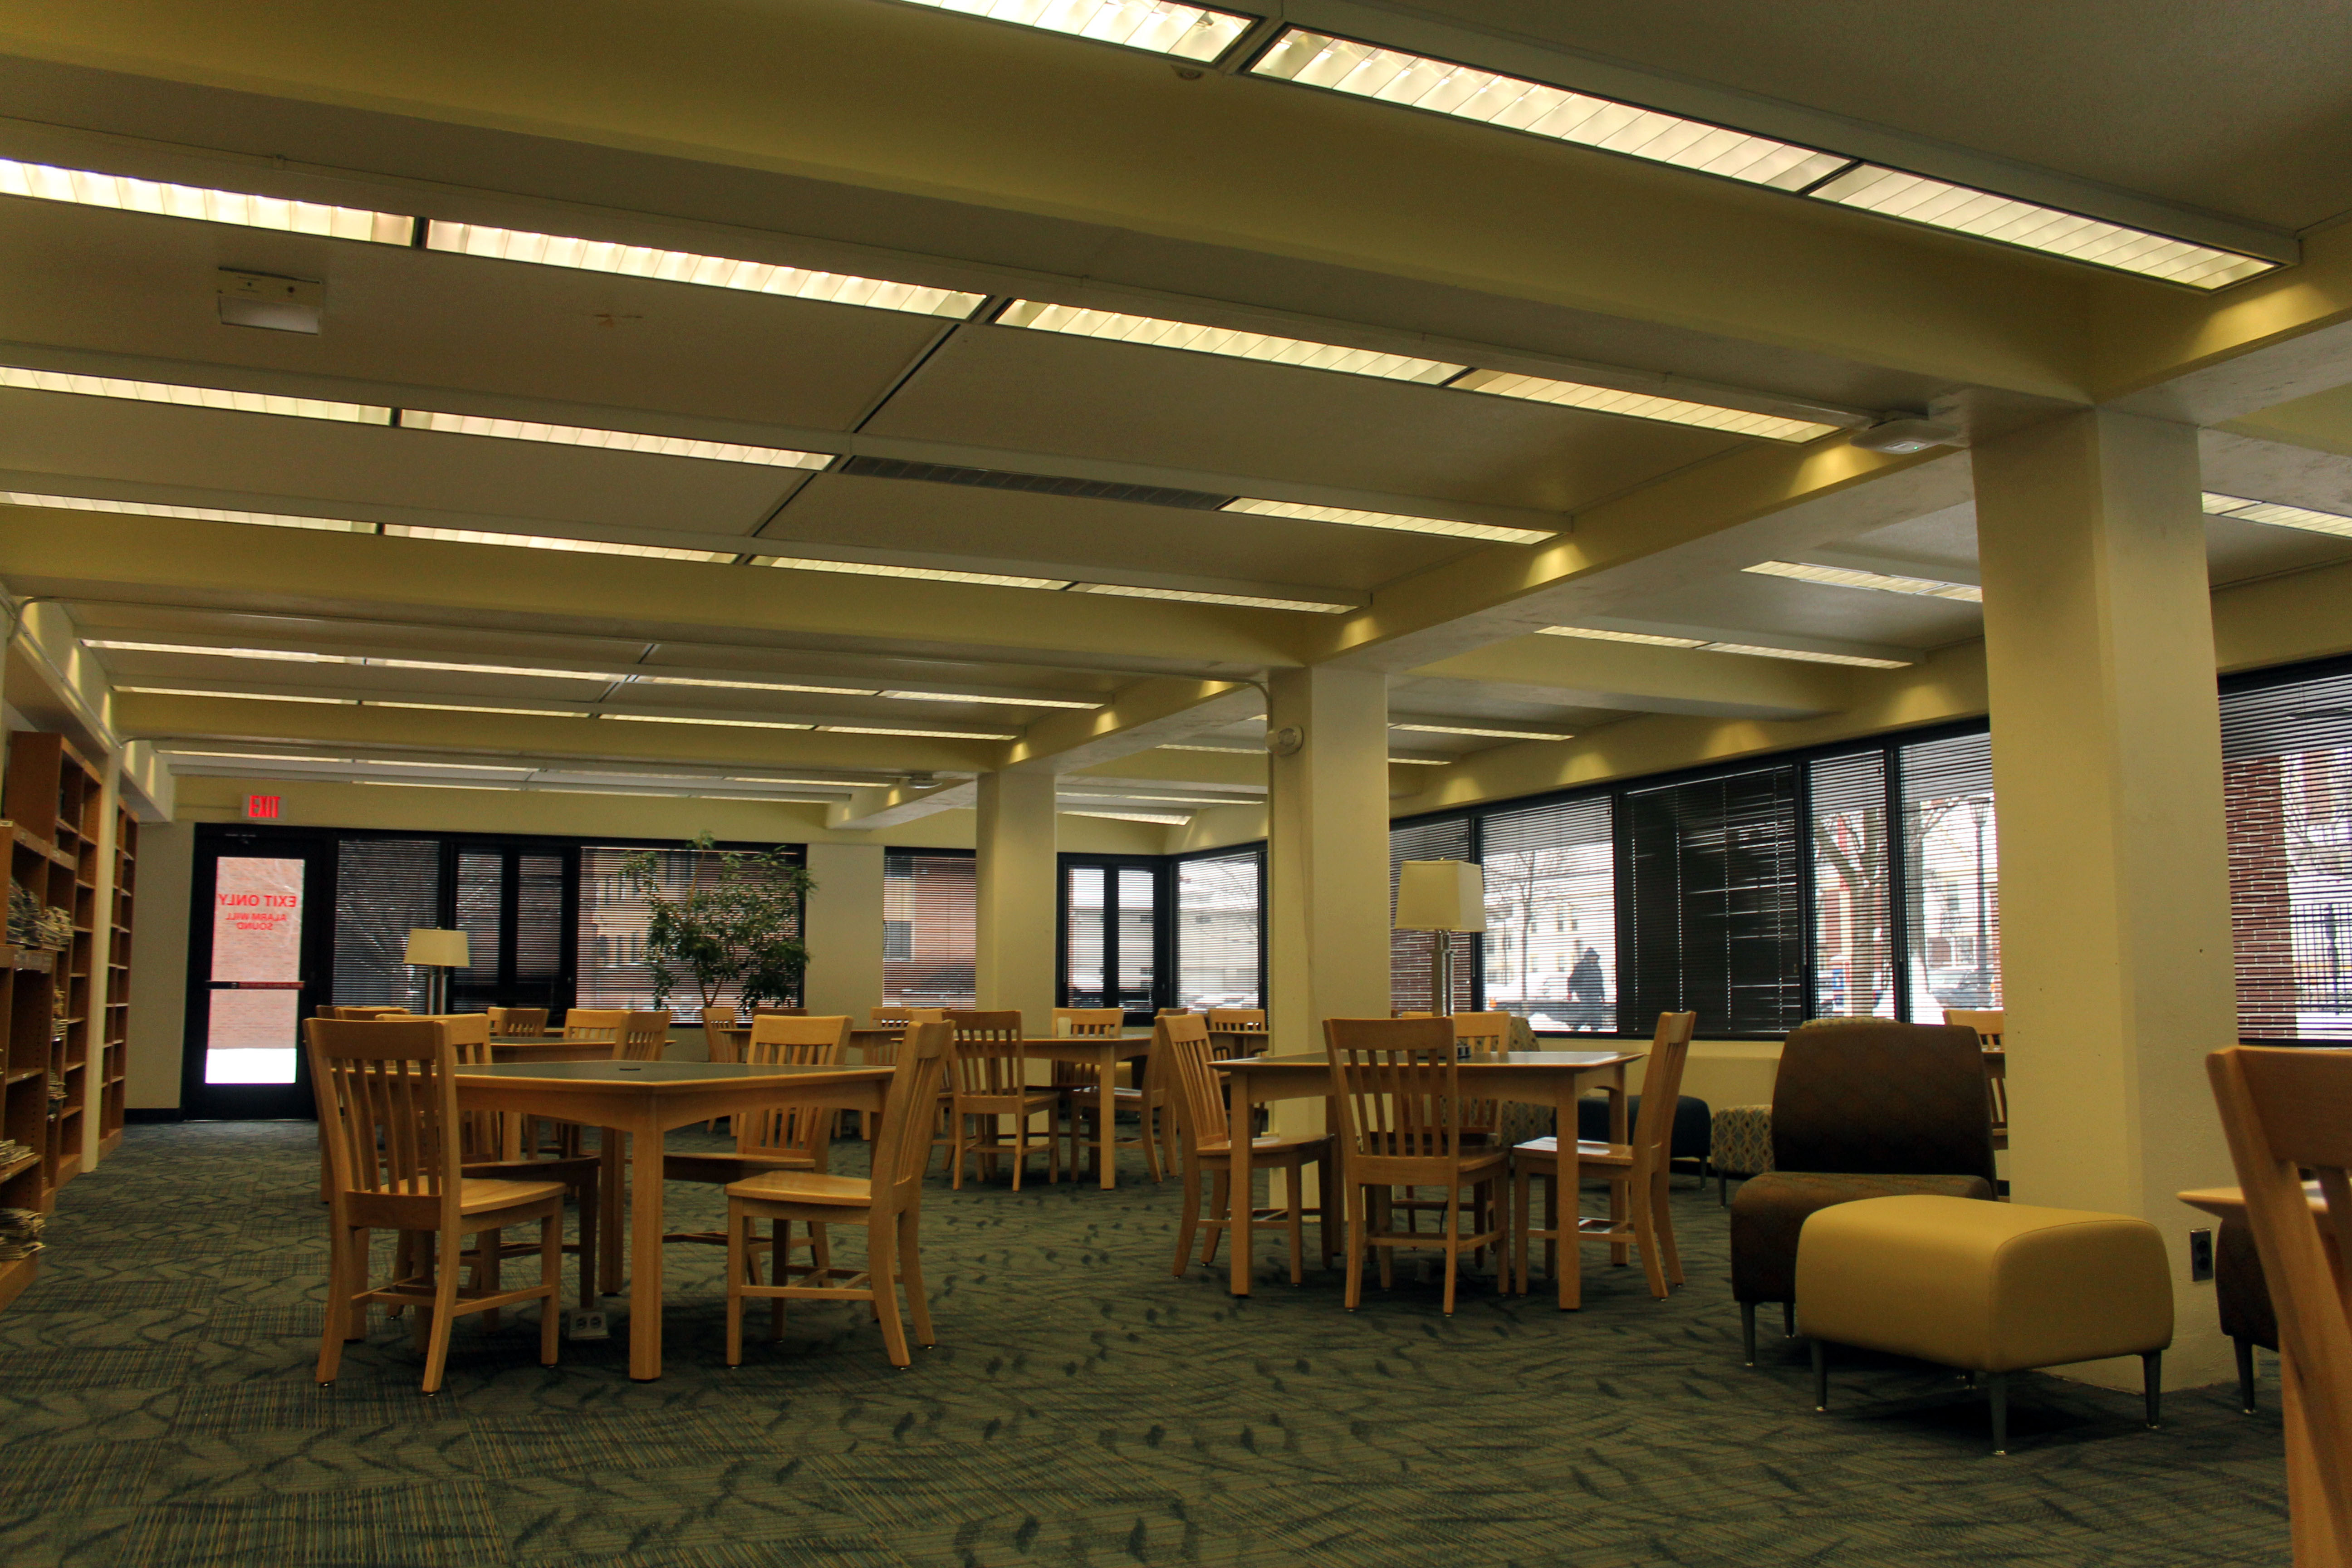 The Saint Rose Chronicle Photos Library Renovated